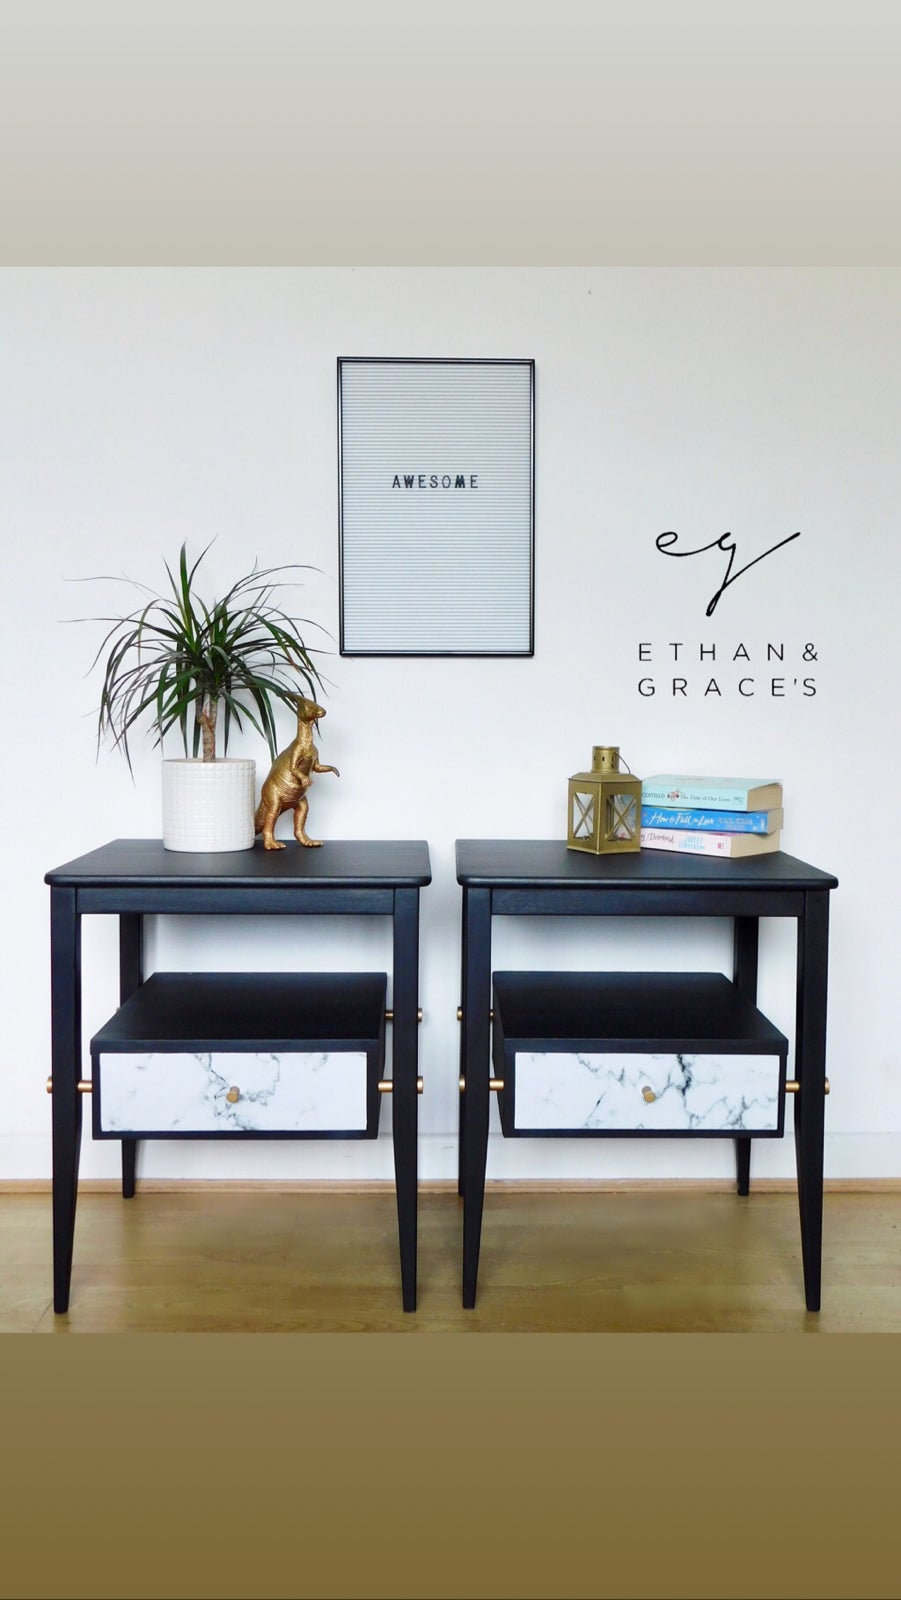 Image of A pair of black, gold and marble bedside tables